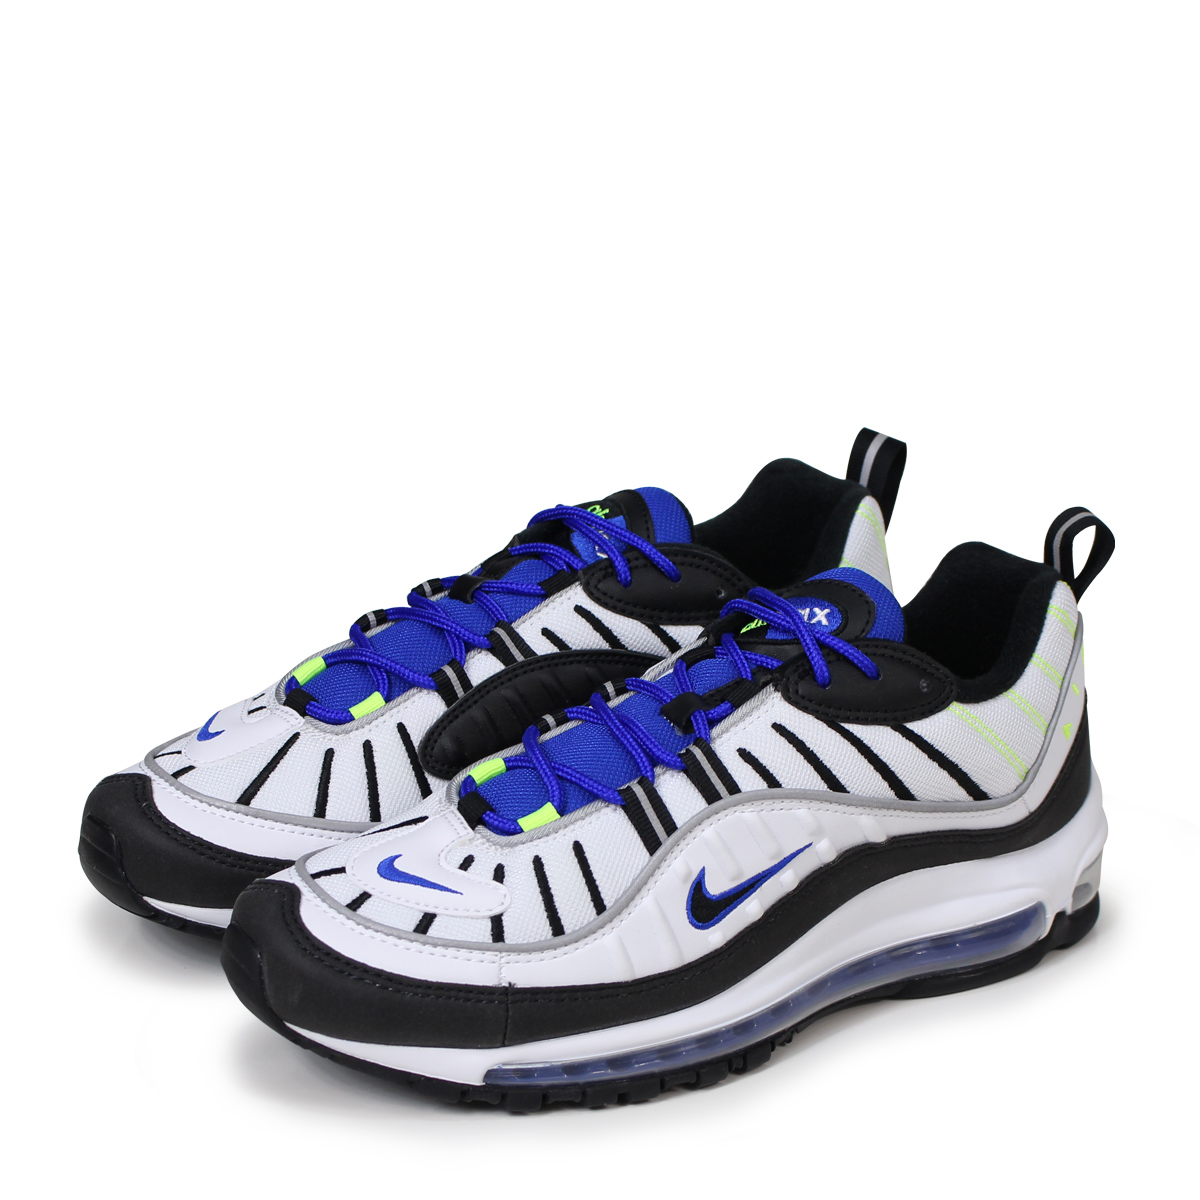 low priced 2d5c8 856f3 NIKE AIR MAX 98 RACER BLUE Kie Ney AMAX 98 sneakers men 640,744-103 blue ...